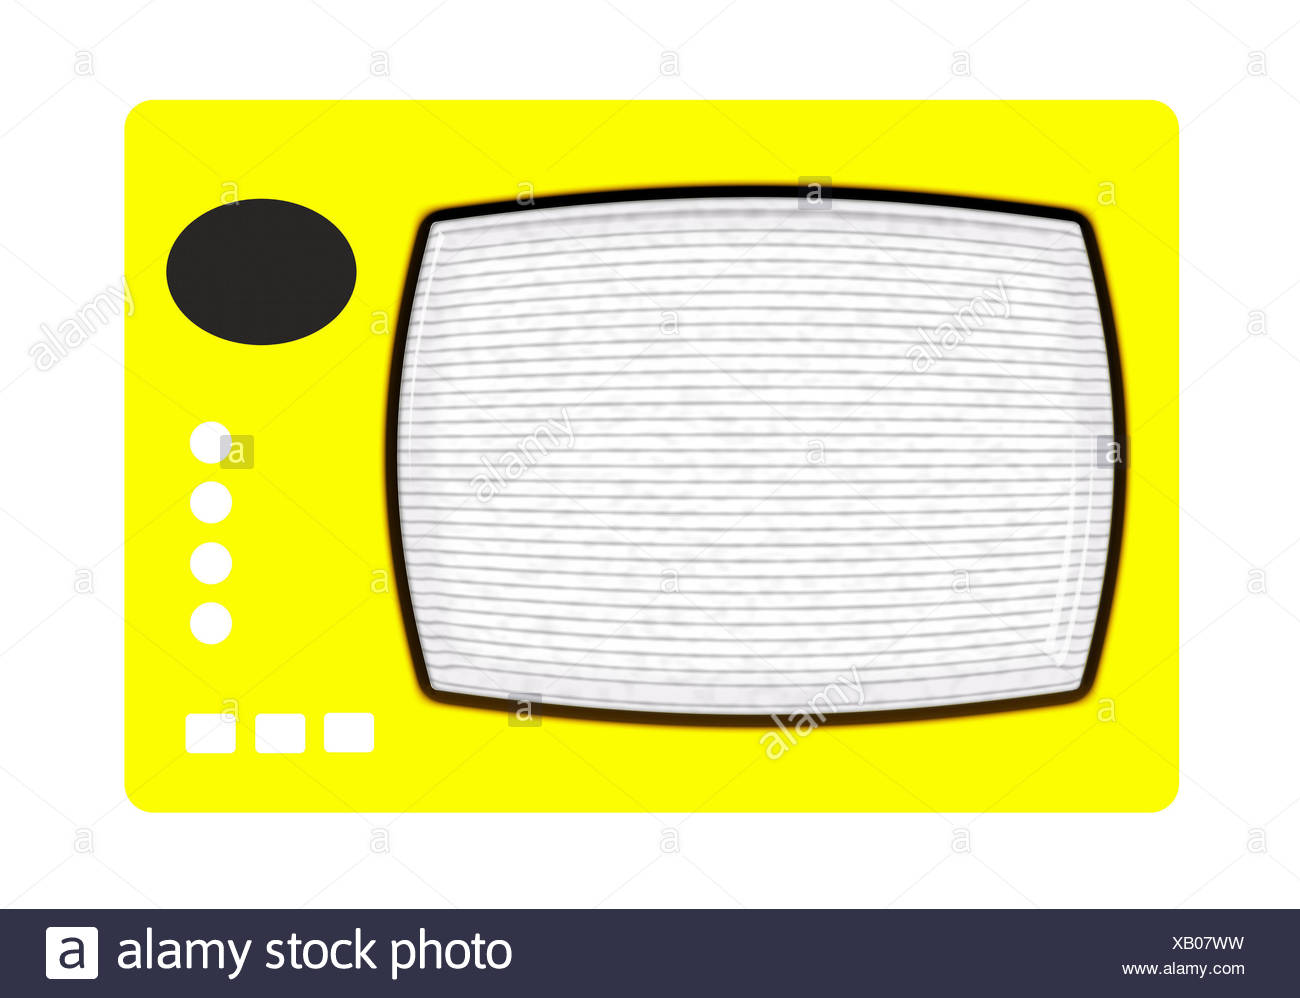 antenna, screen, digital, television, tv, televisions, picture tube, image - Stock Image